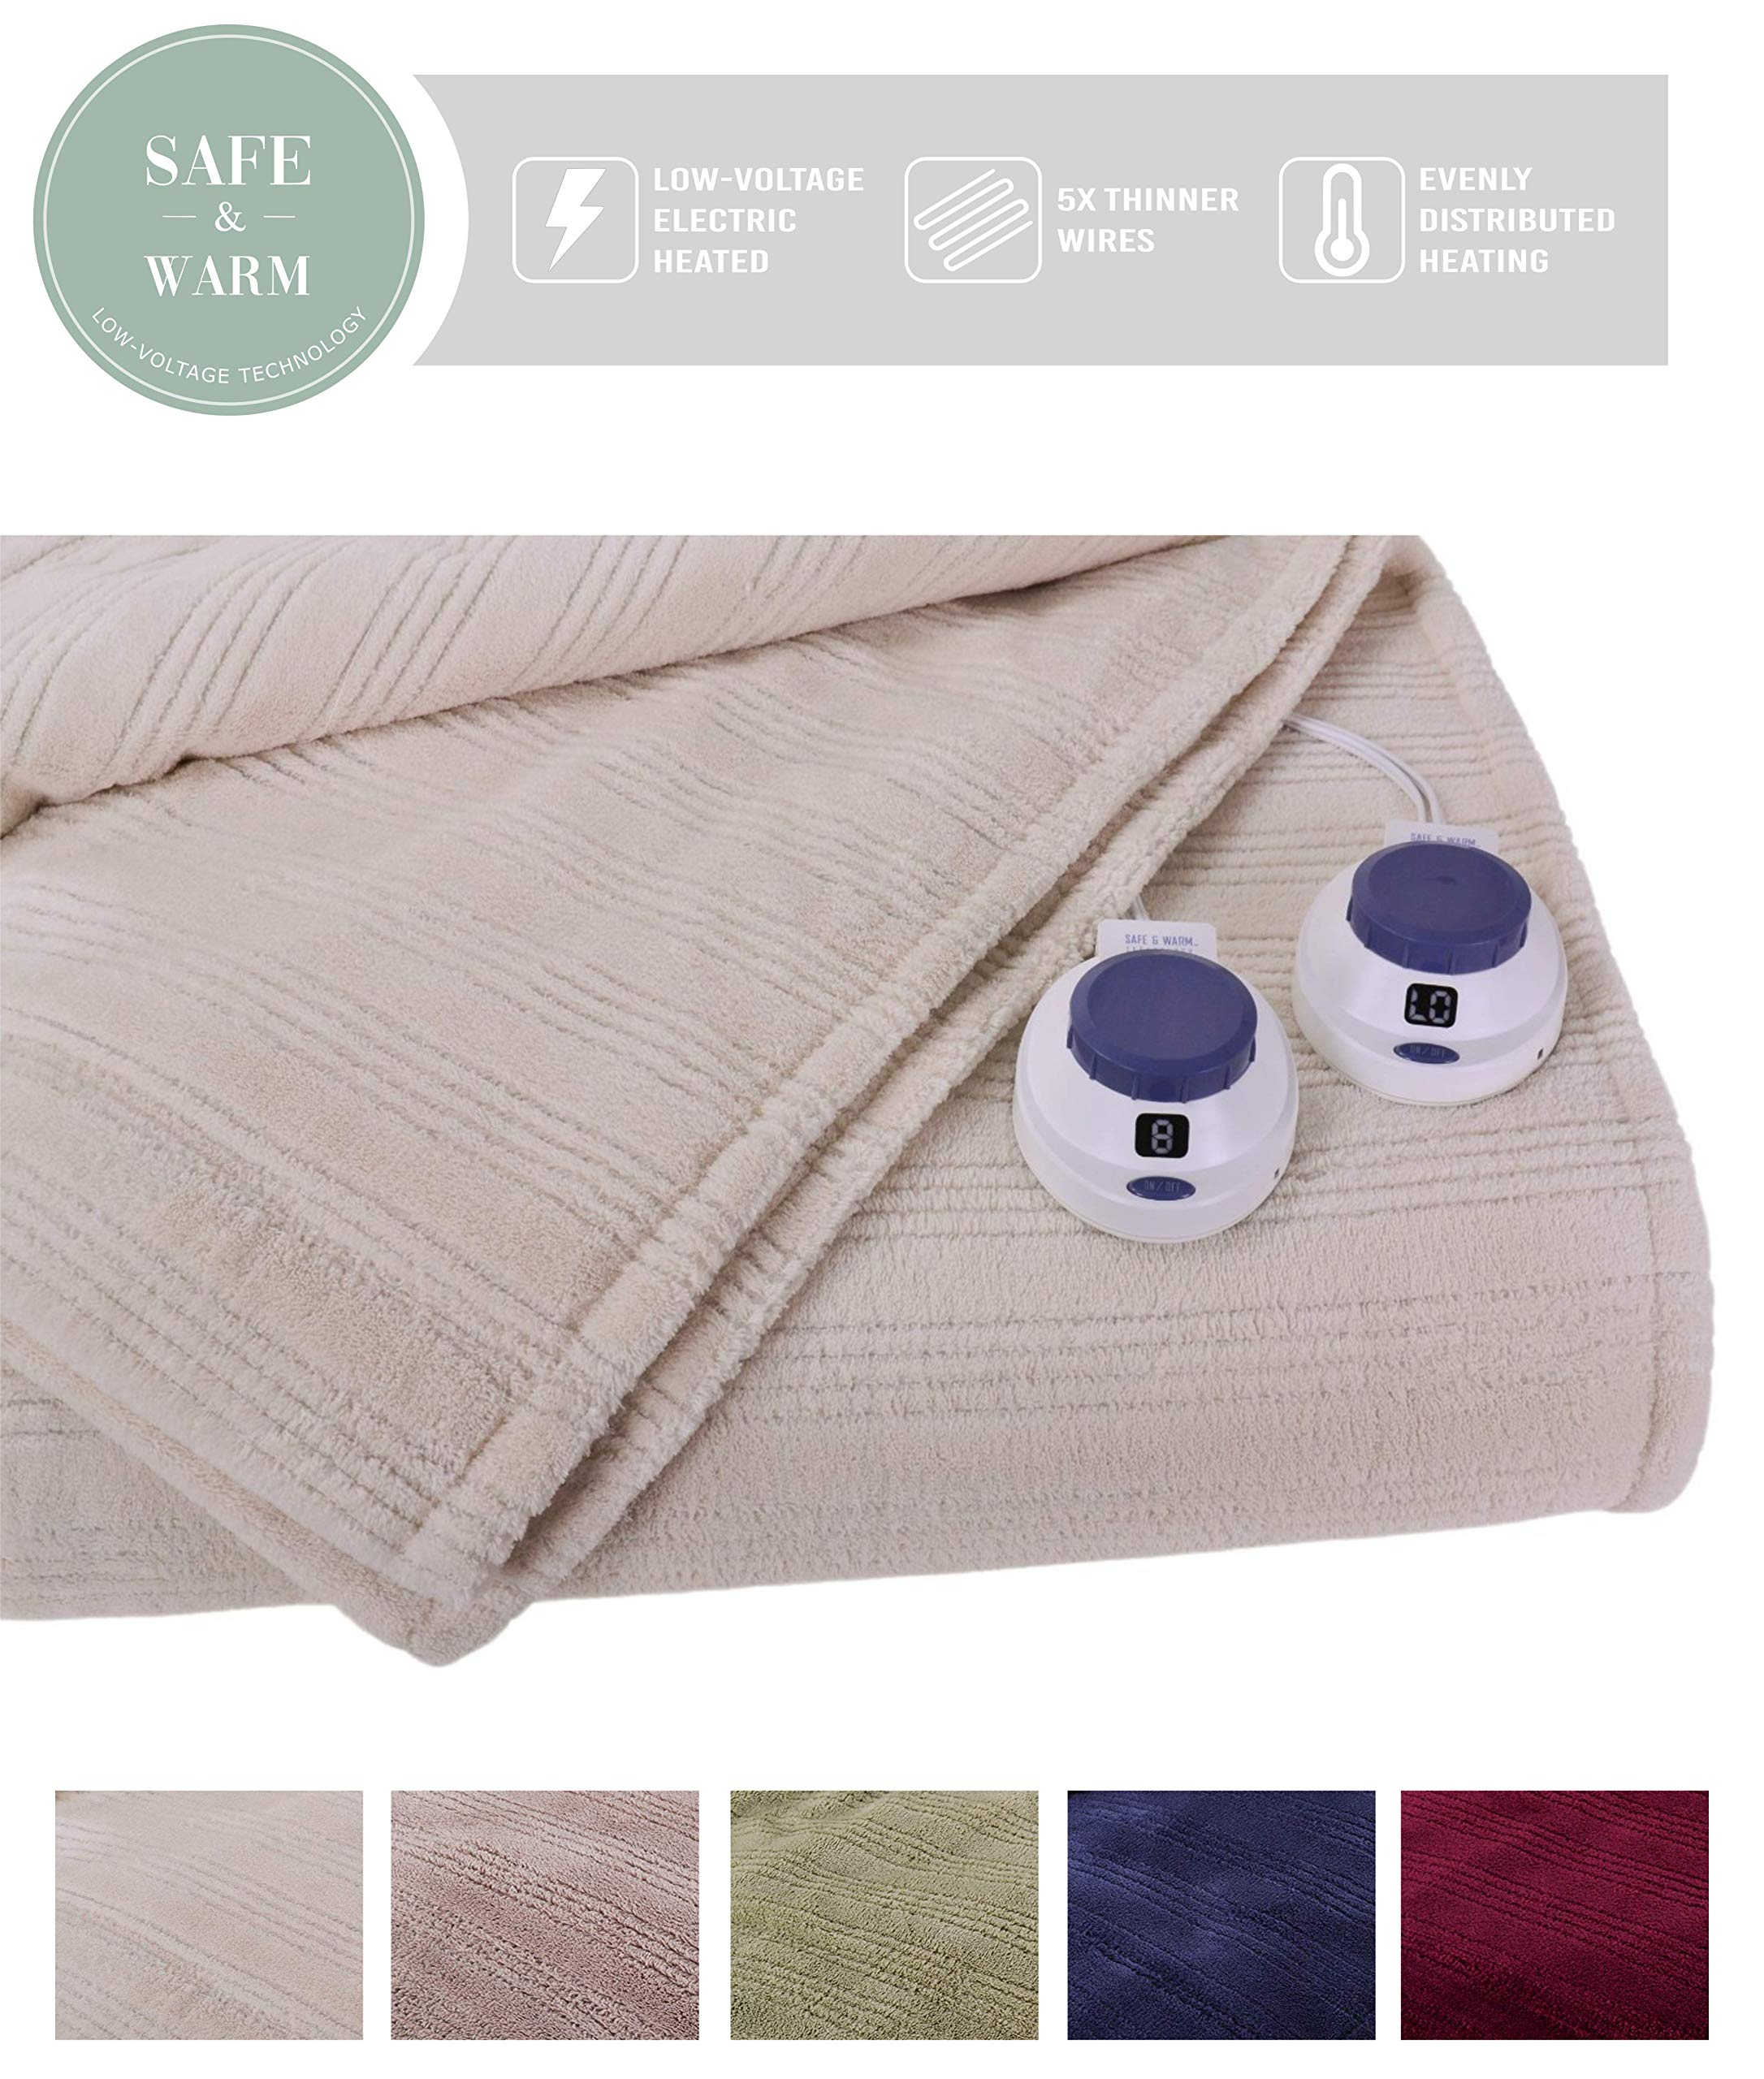 SoftHeat by Perfect Fit | Ultra Soft Plush Electric Heated Warming Blanket with Safe & Warm Low-Voltage Technology (Queen, Natural)